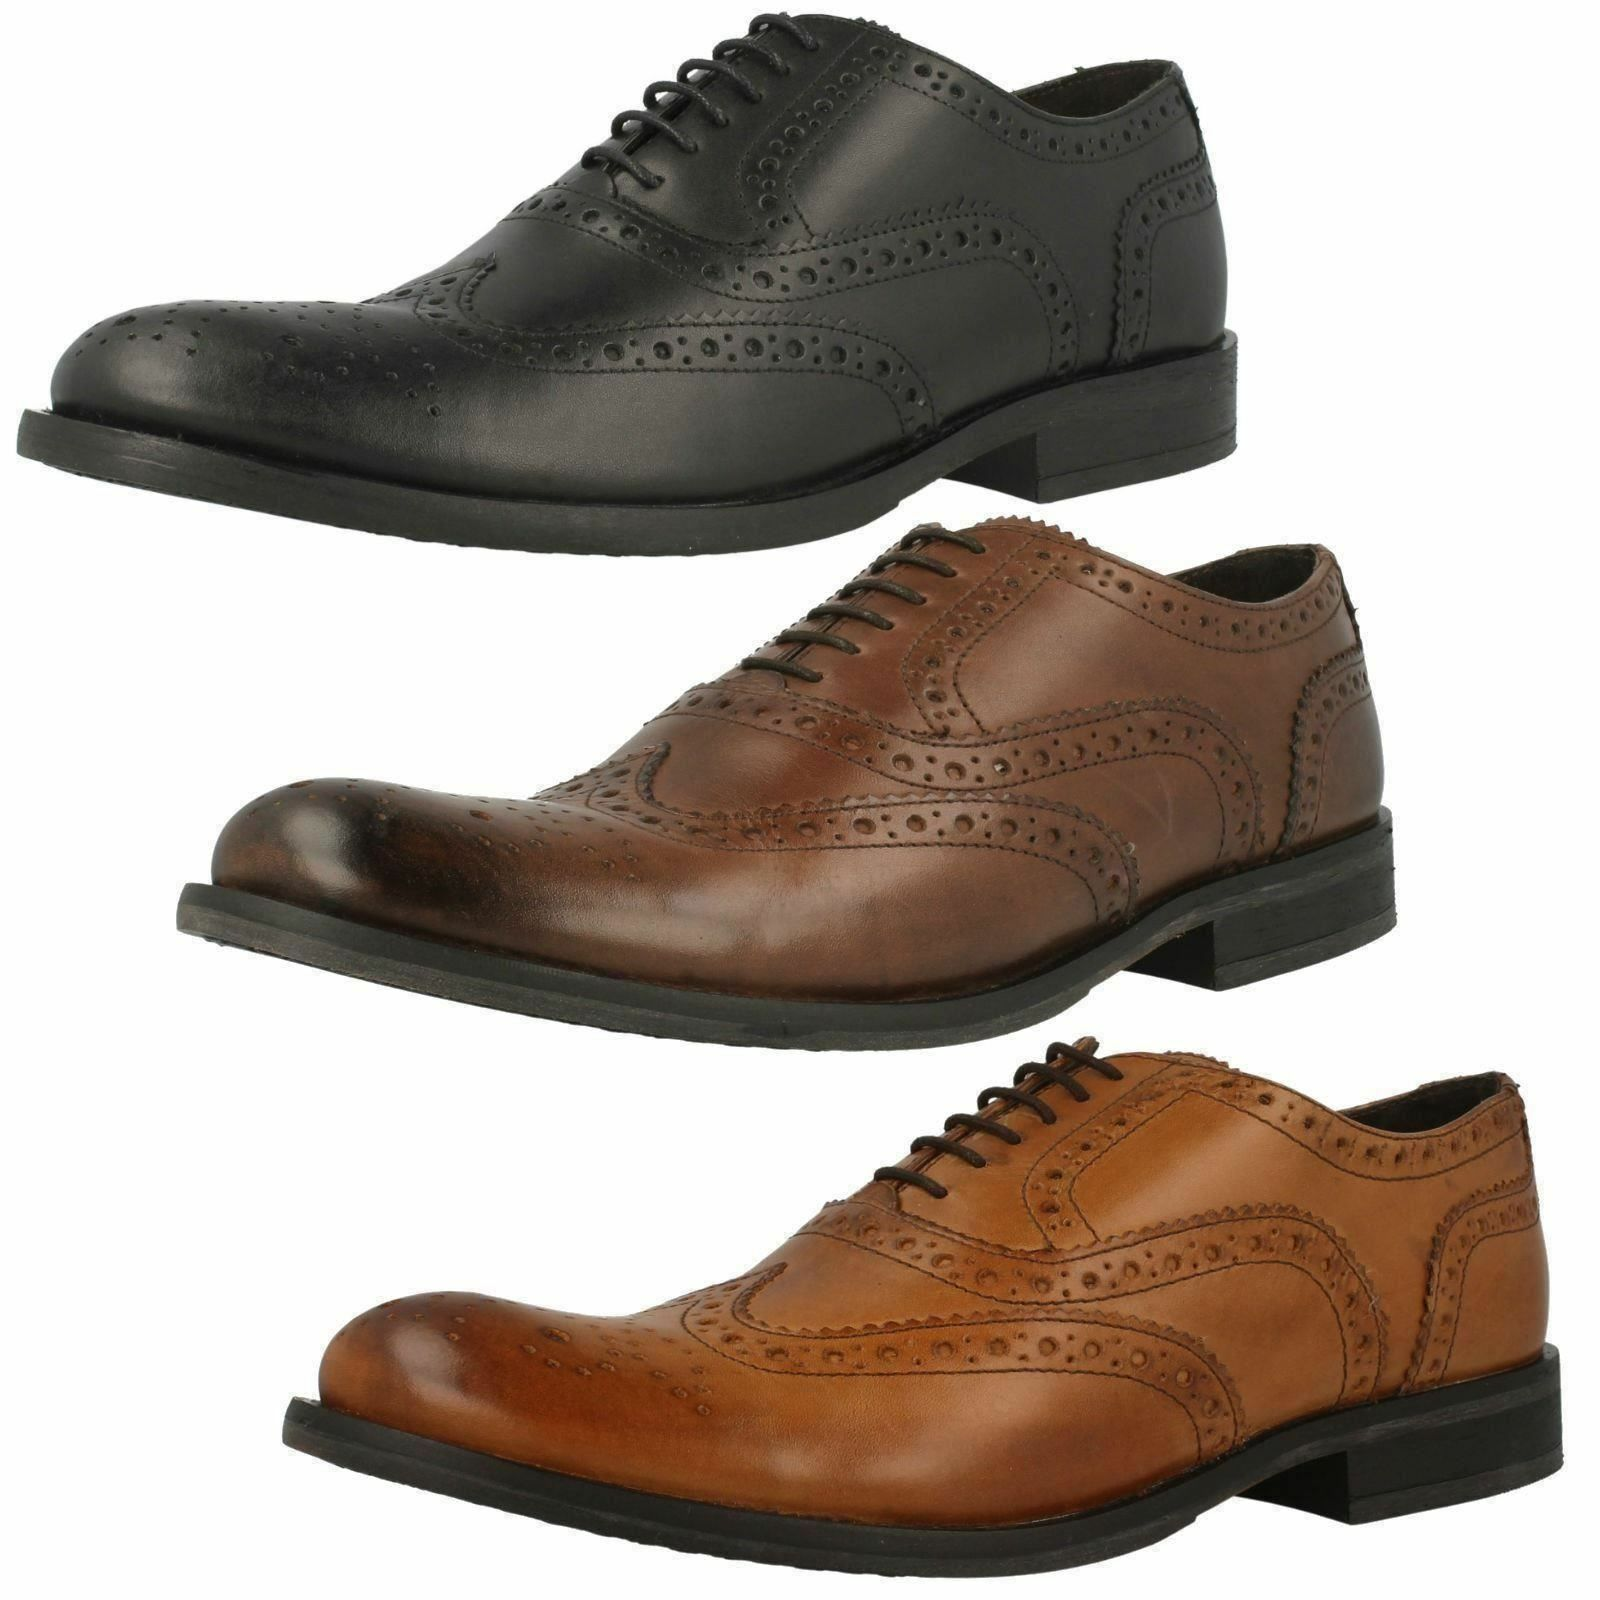 SALE  Uomo Walnut Leder lace up brogue shoe by Base